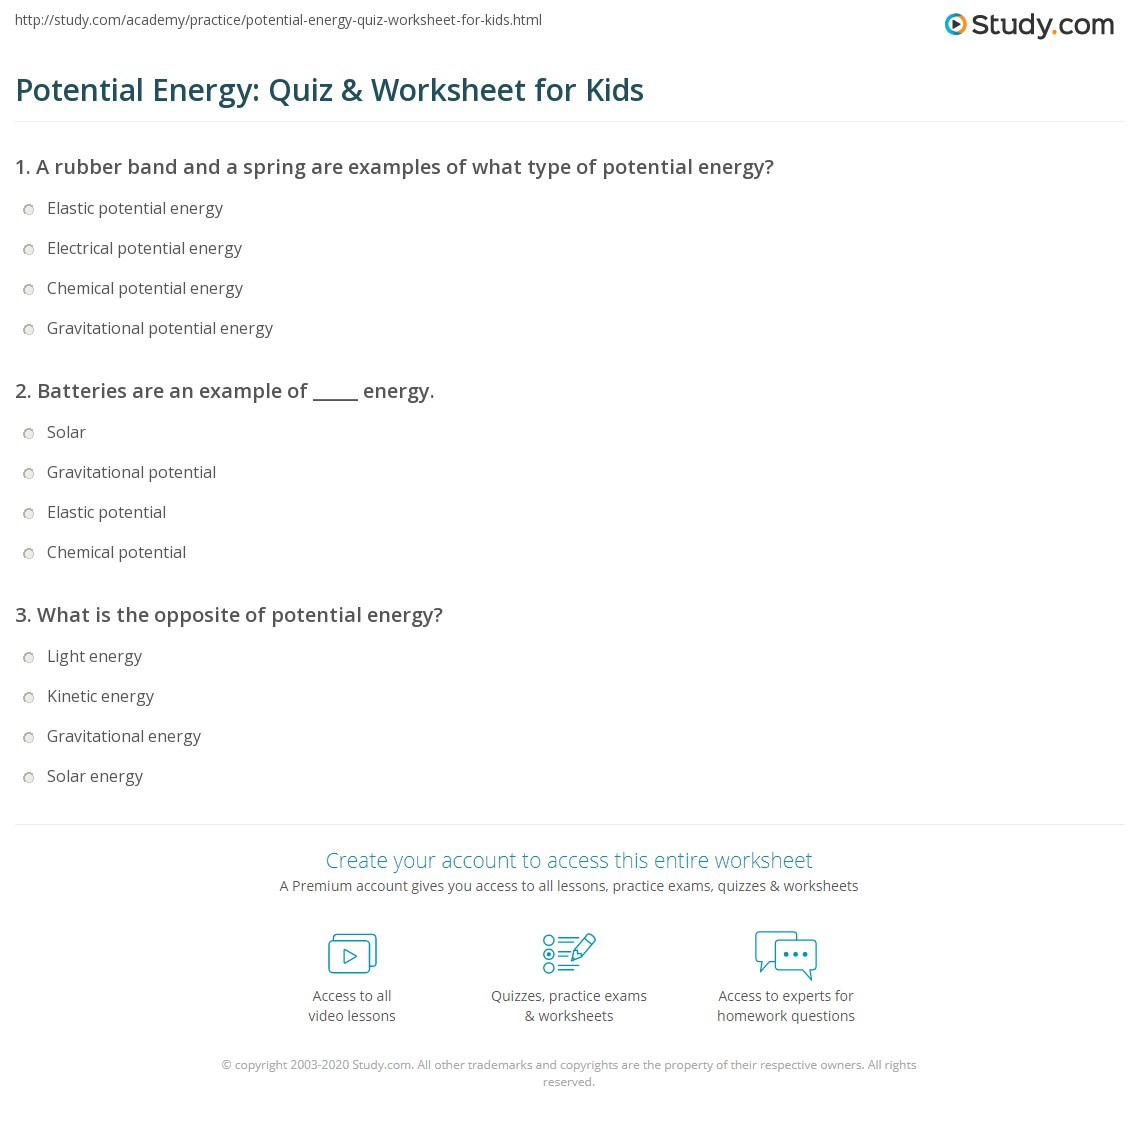 Potential Energy: Quiz & Worksheet for Kids | Study.com